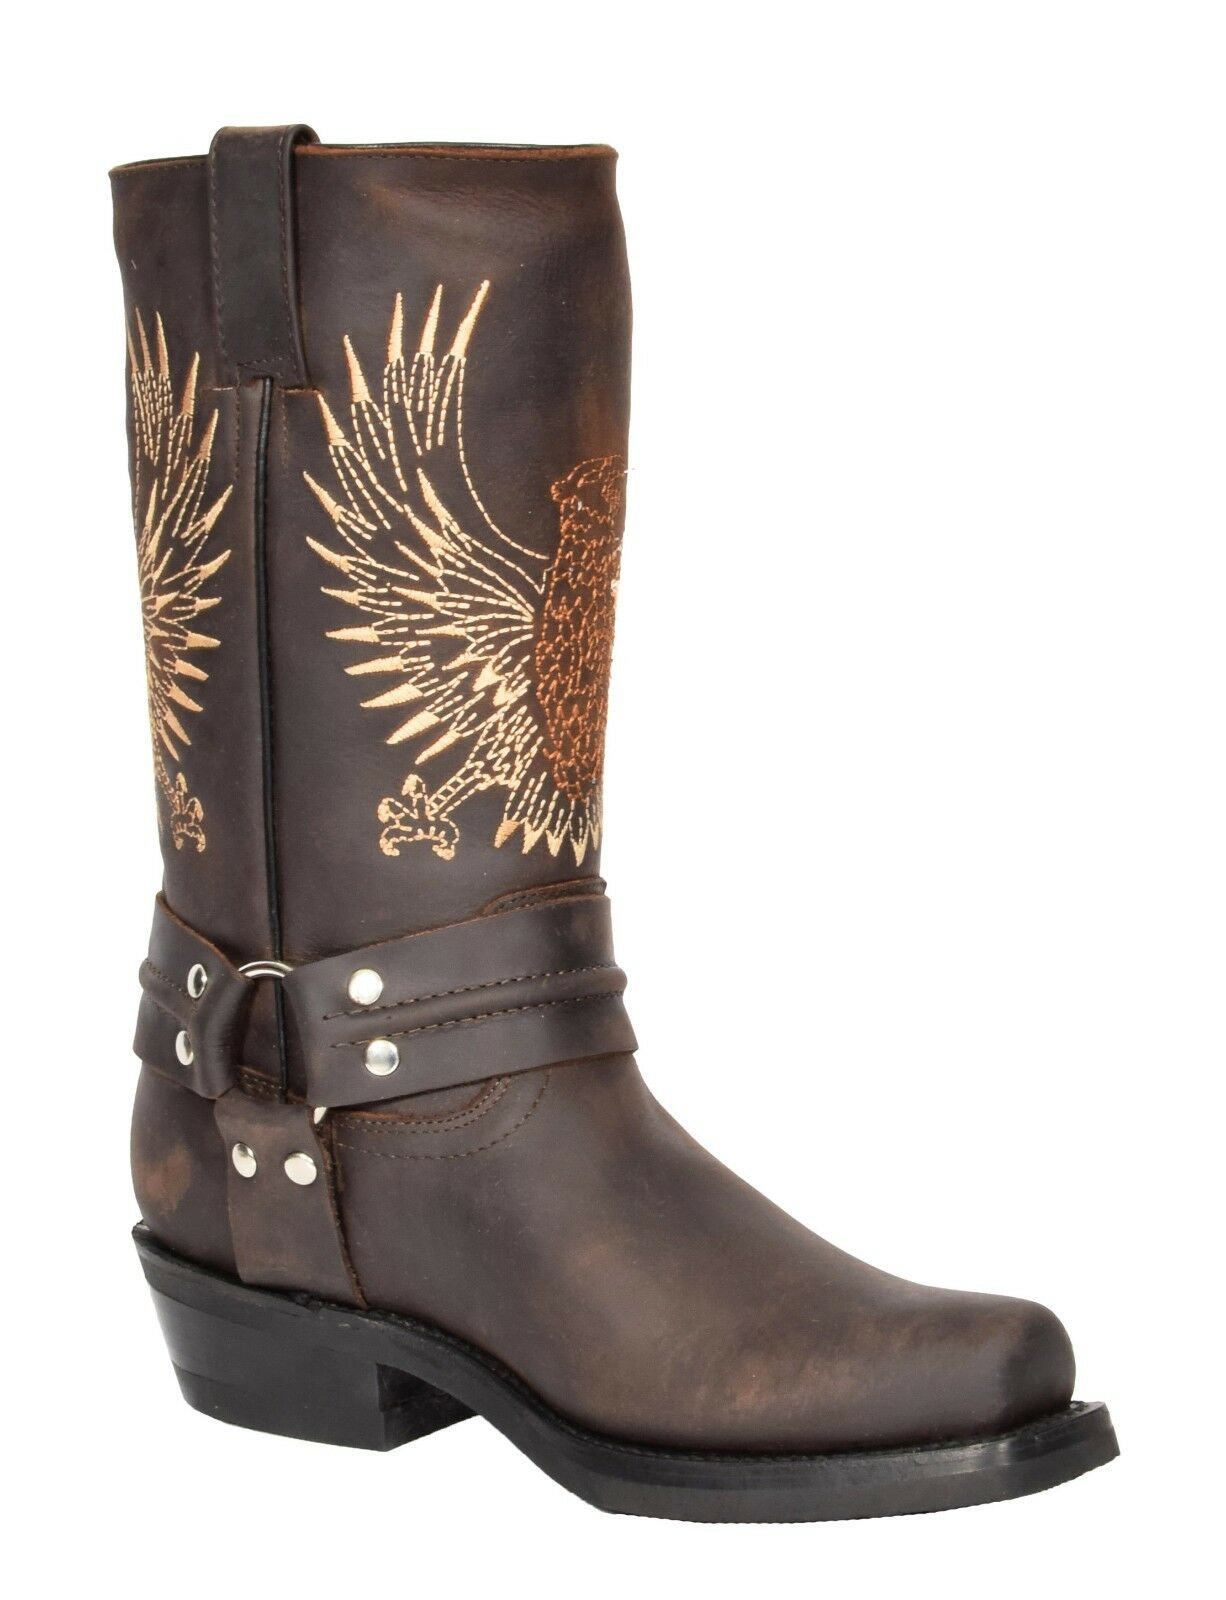 Mens Real Leather Cowboy Stiefel Western Heel Calf Length Square Square Square Toe schuhe dcad74